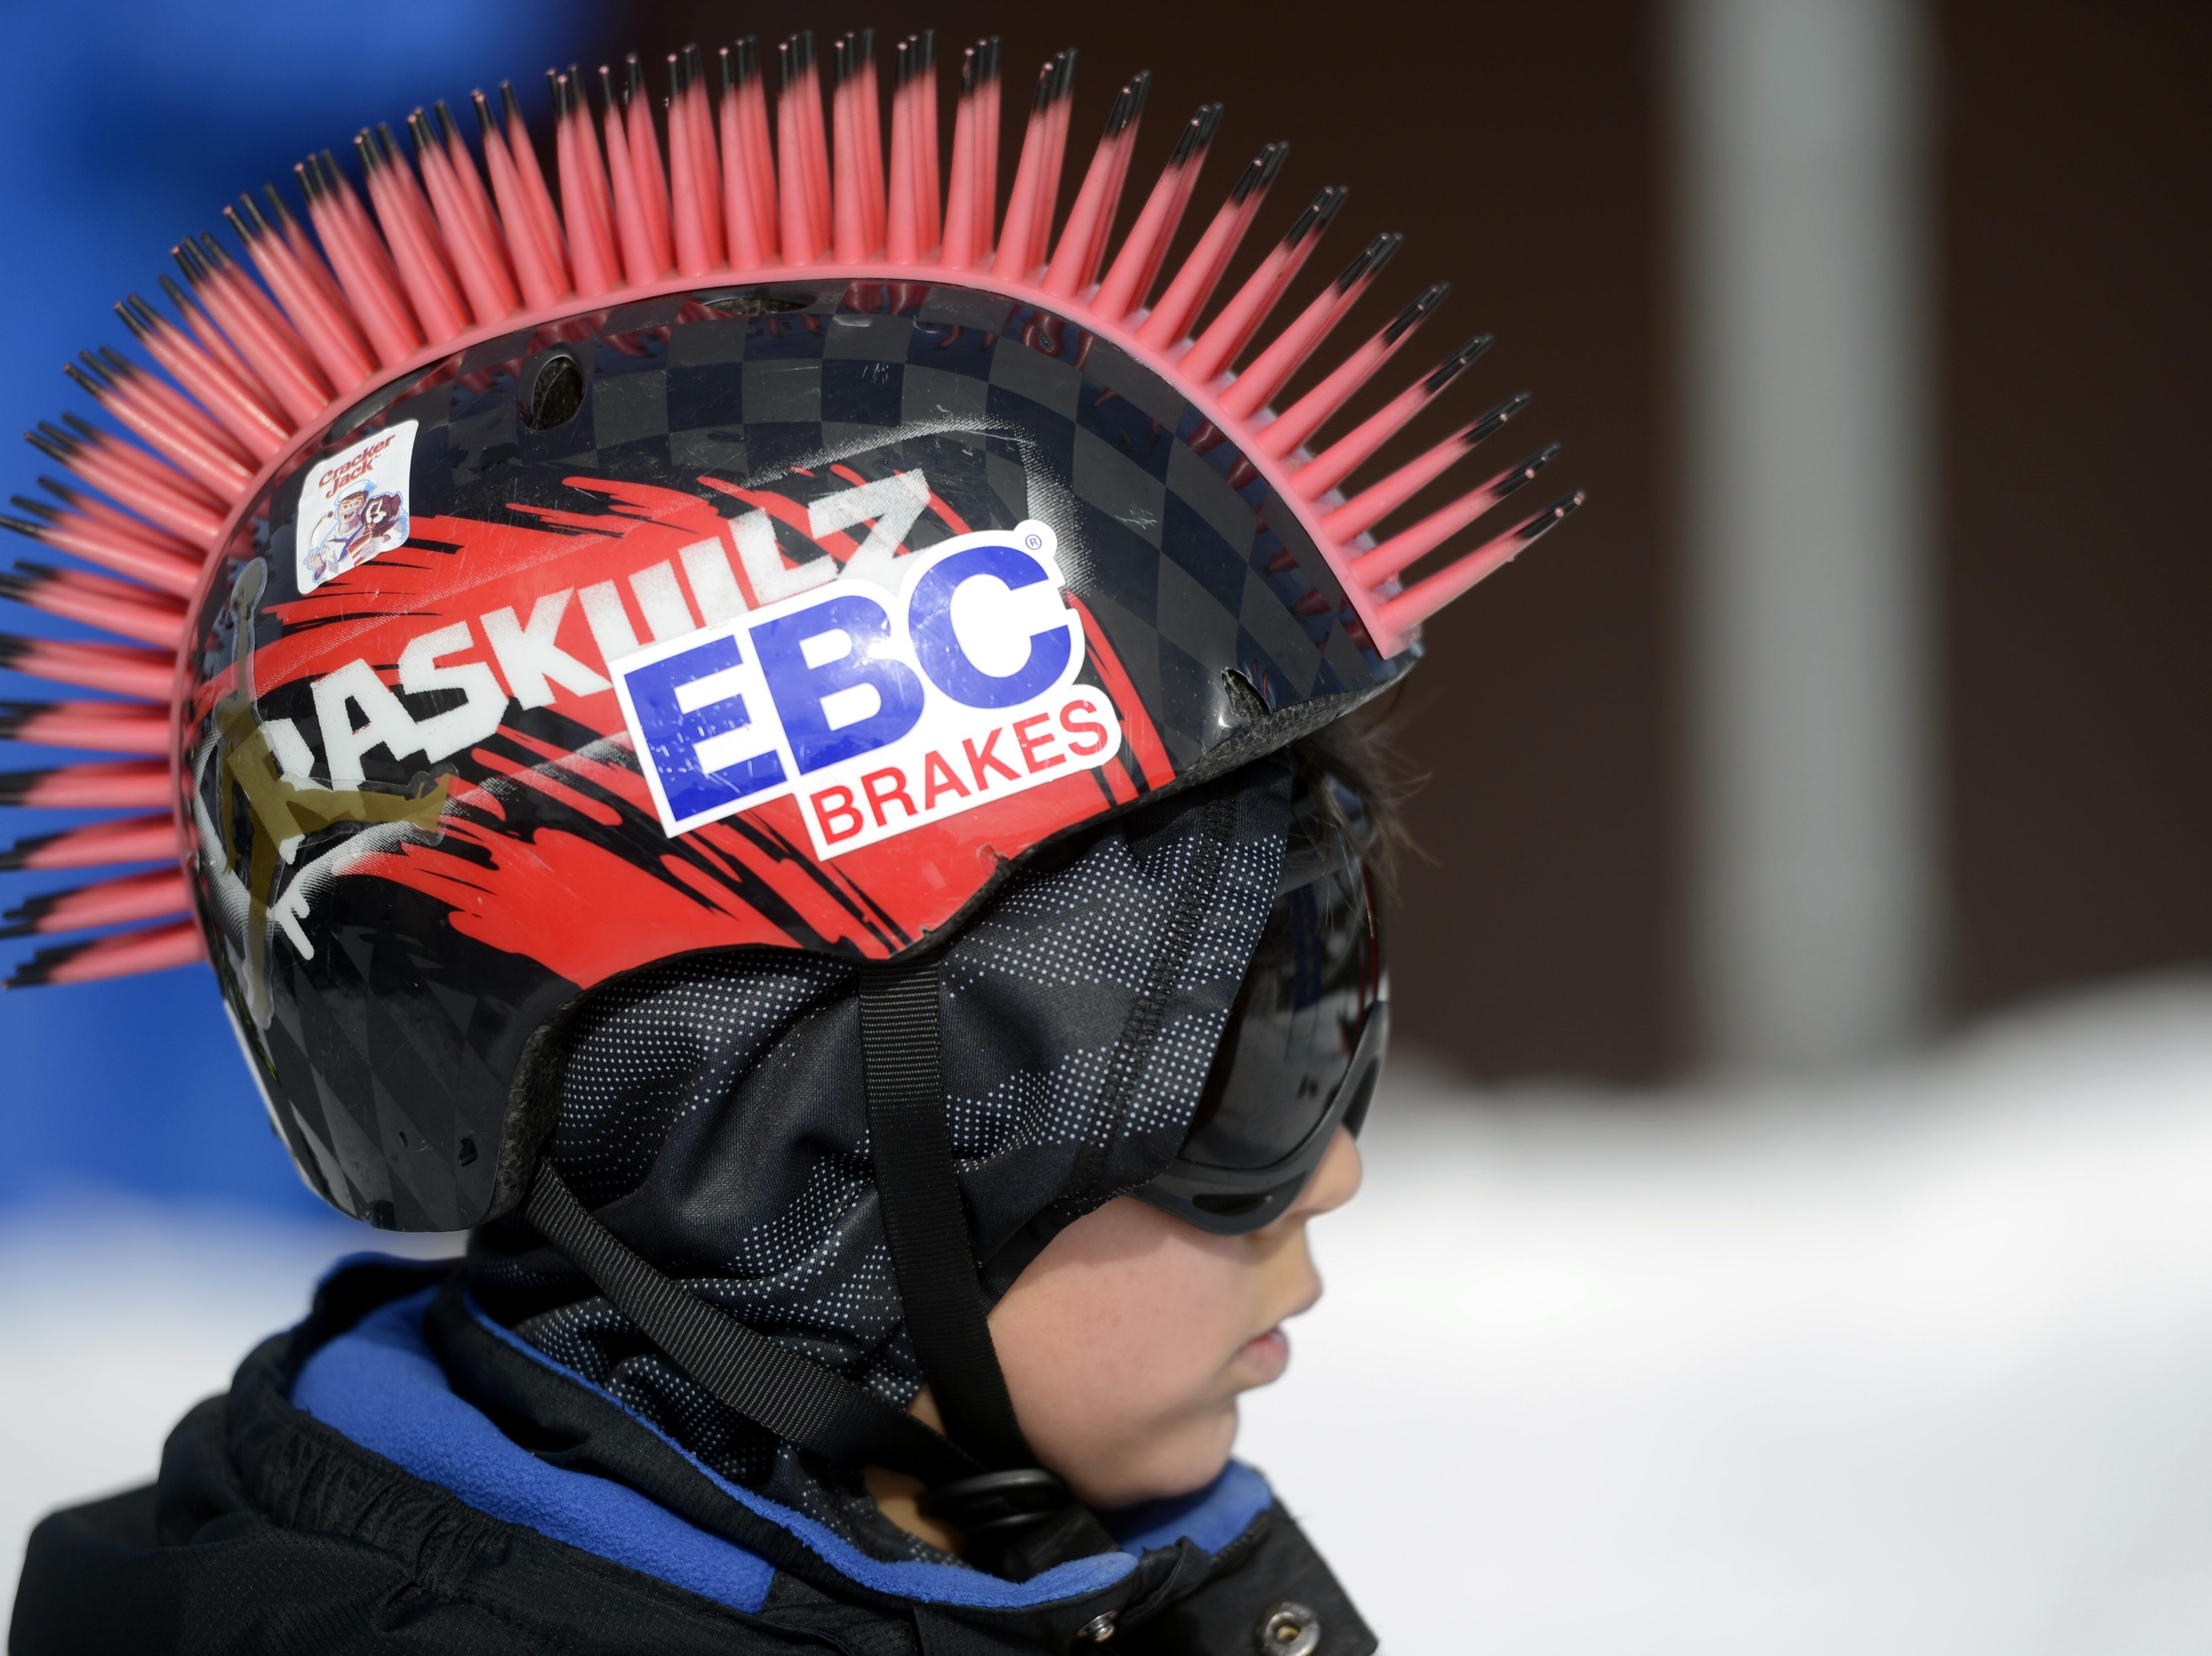 A rider waits his turn on the luge course during the Titletown Winter Games on Saturday, Feb. 16, 2019.